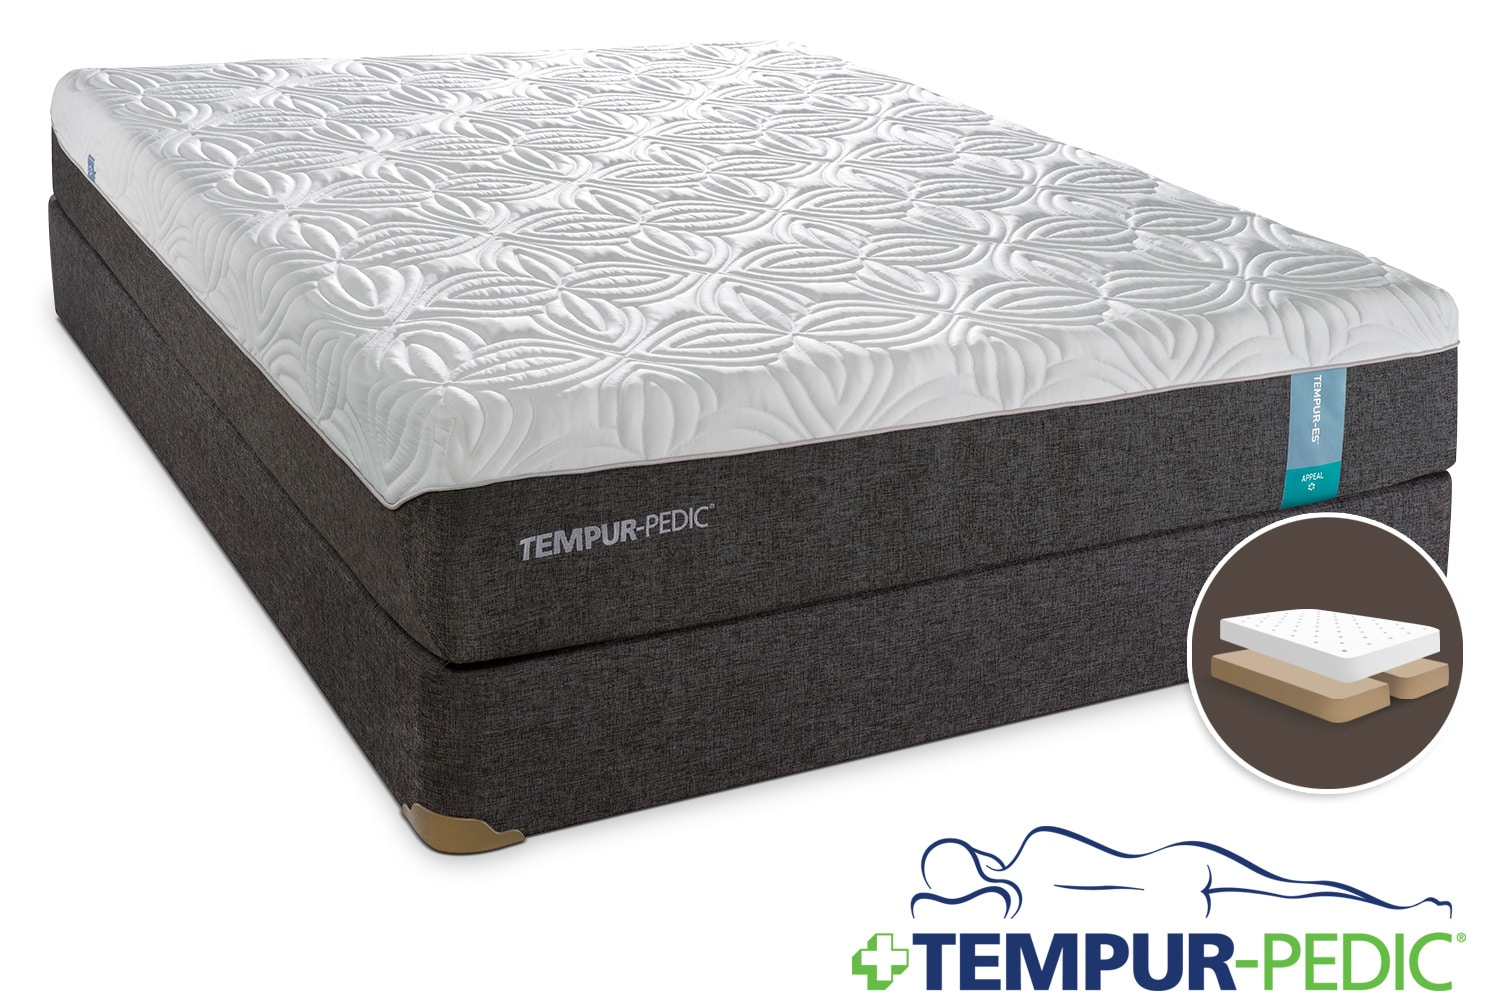 Tempur-Pedic Appeal 2.0 Cushion Firm King Mattress and Split Boxspring Set